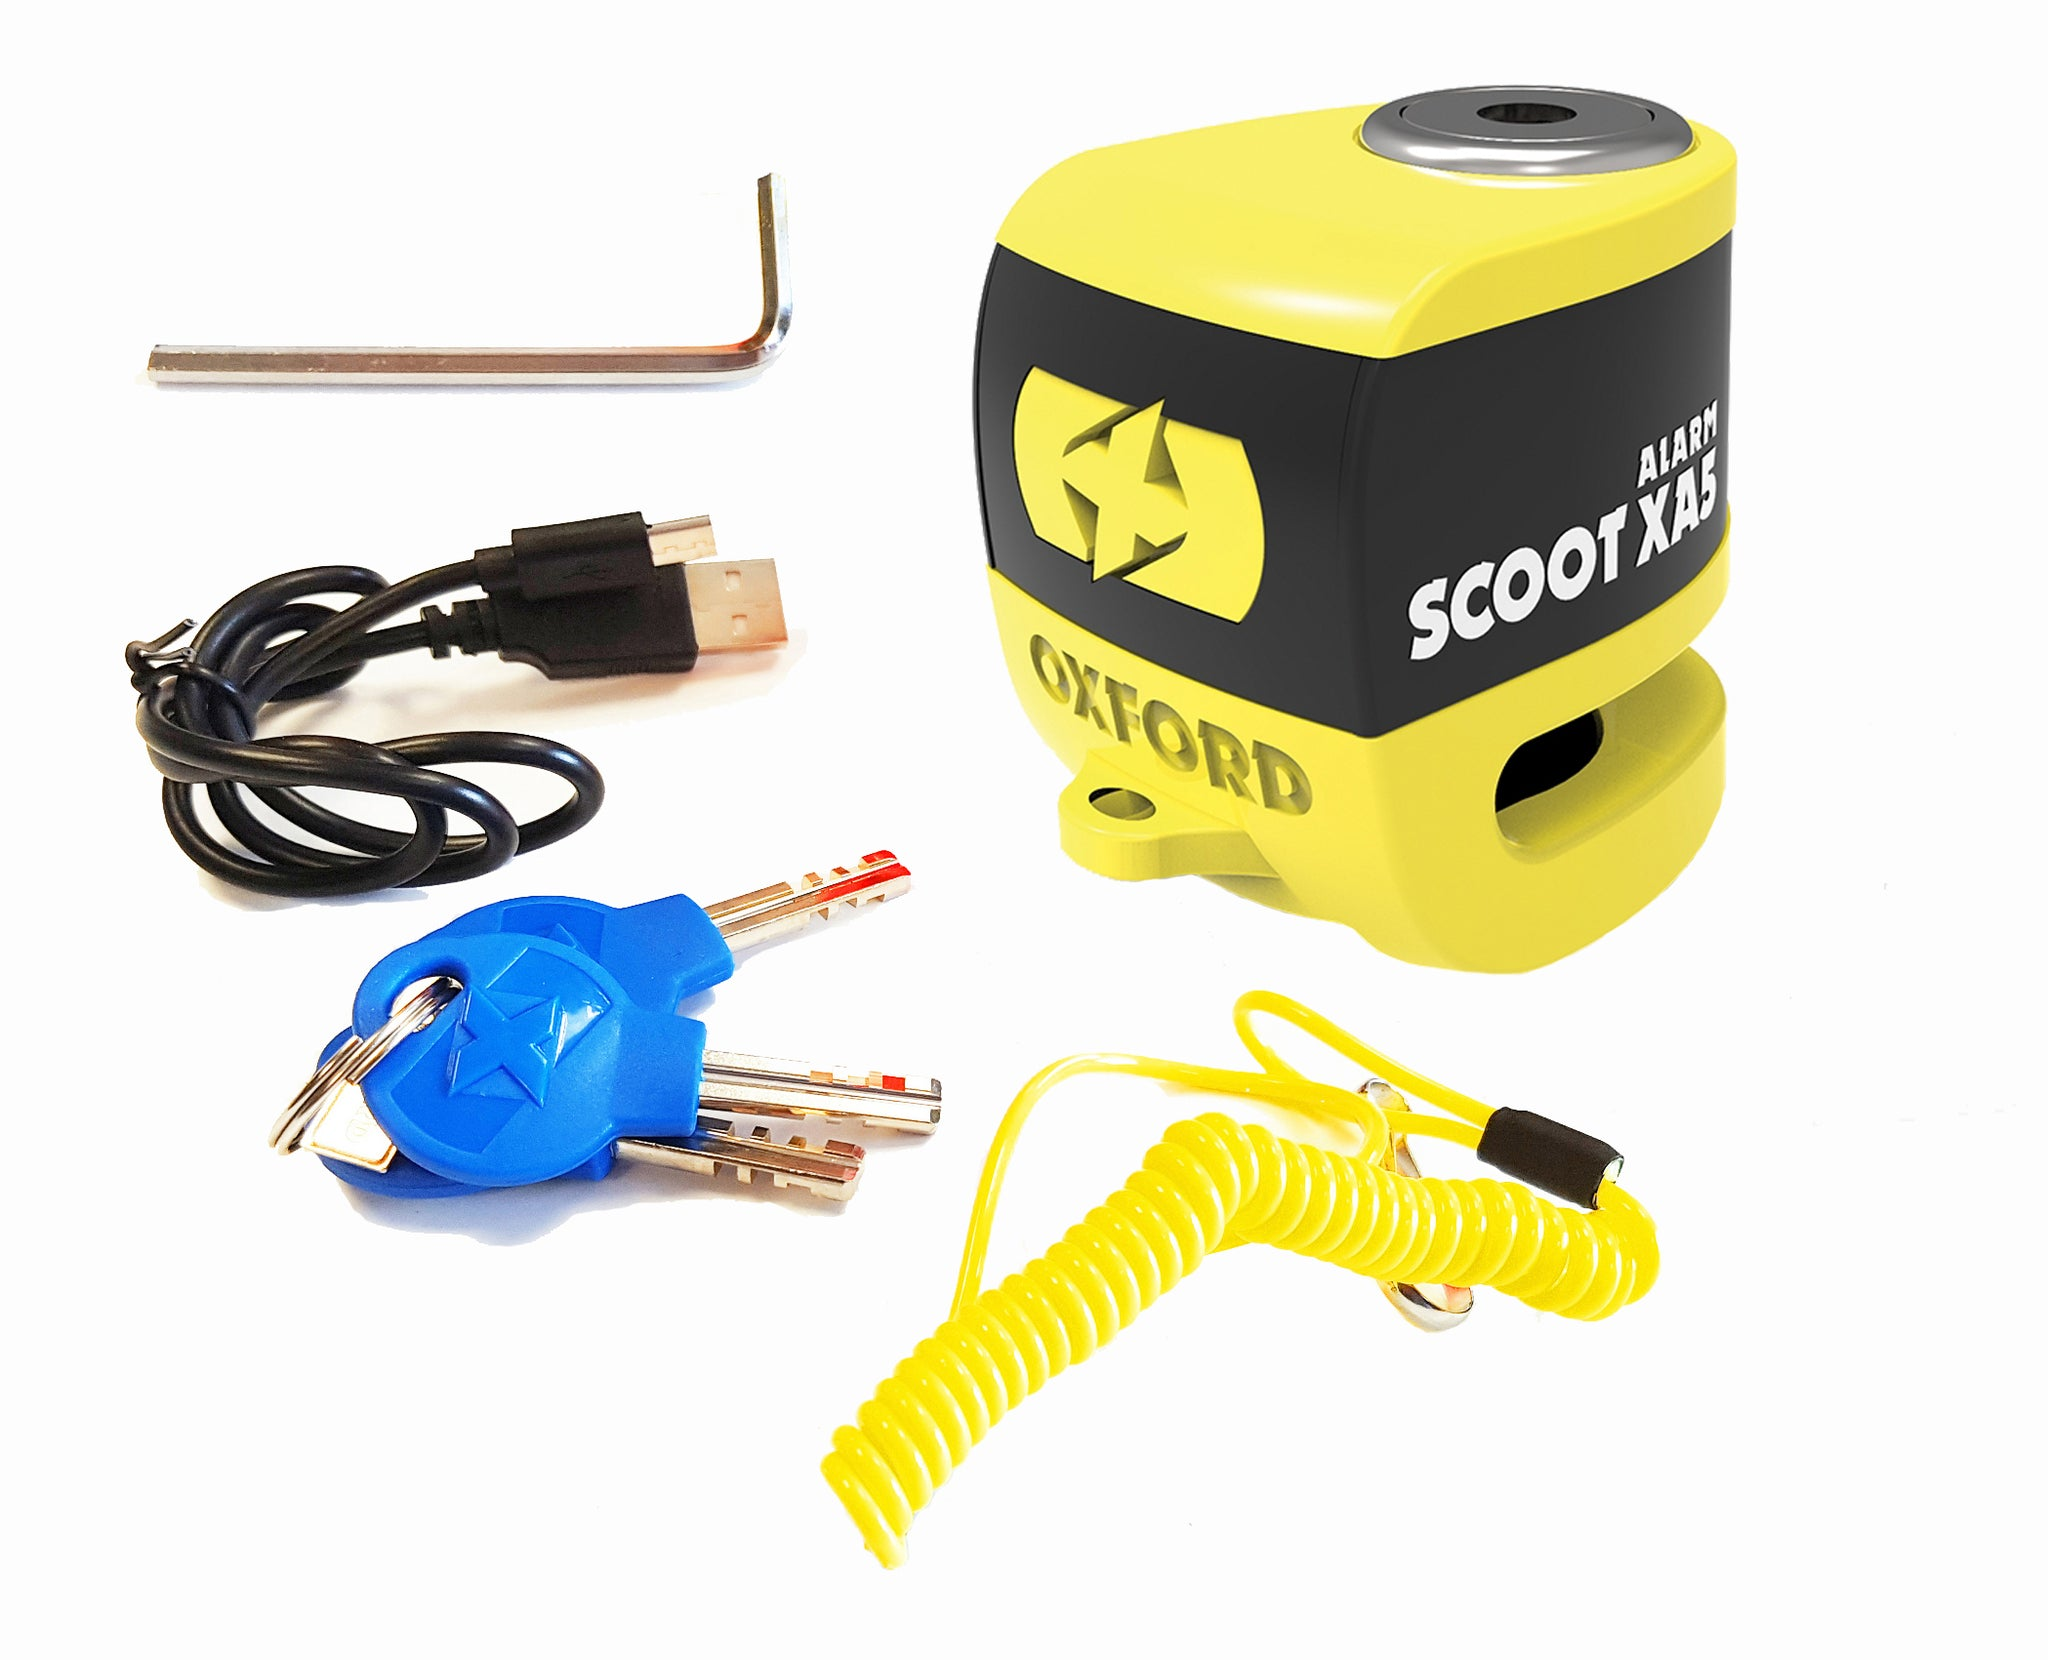 Kawasaki Z1 Oxford SCOOT XA5 LK287 Security Motorbike Yellow Disc Lock